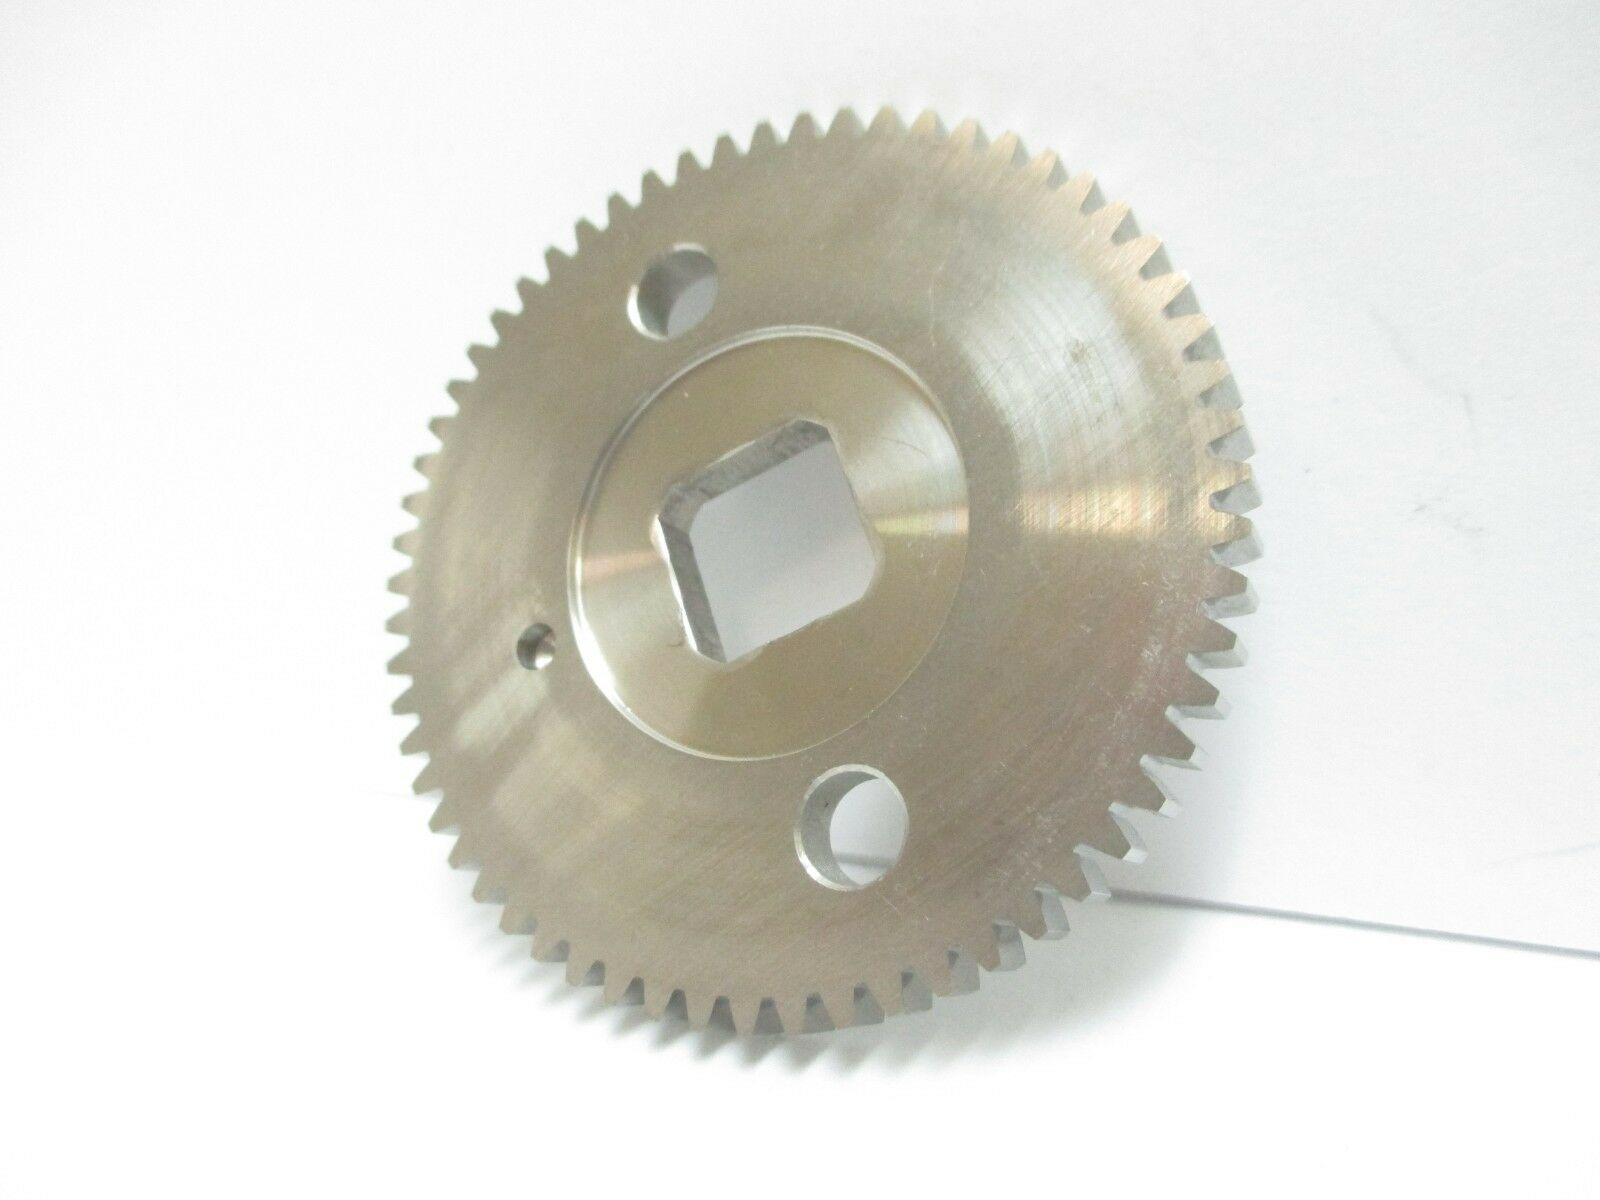 SHIMANO CONVENTIONAL REEL PART - TGT0806 Tyrnos 20 - Drive Gear